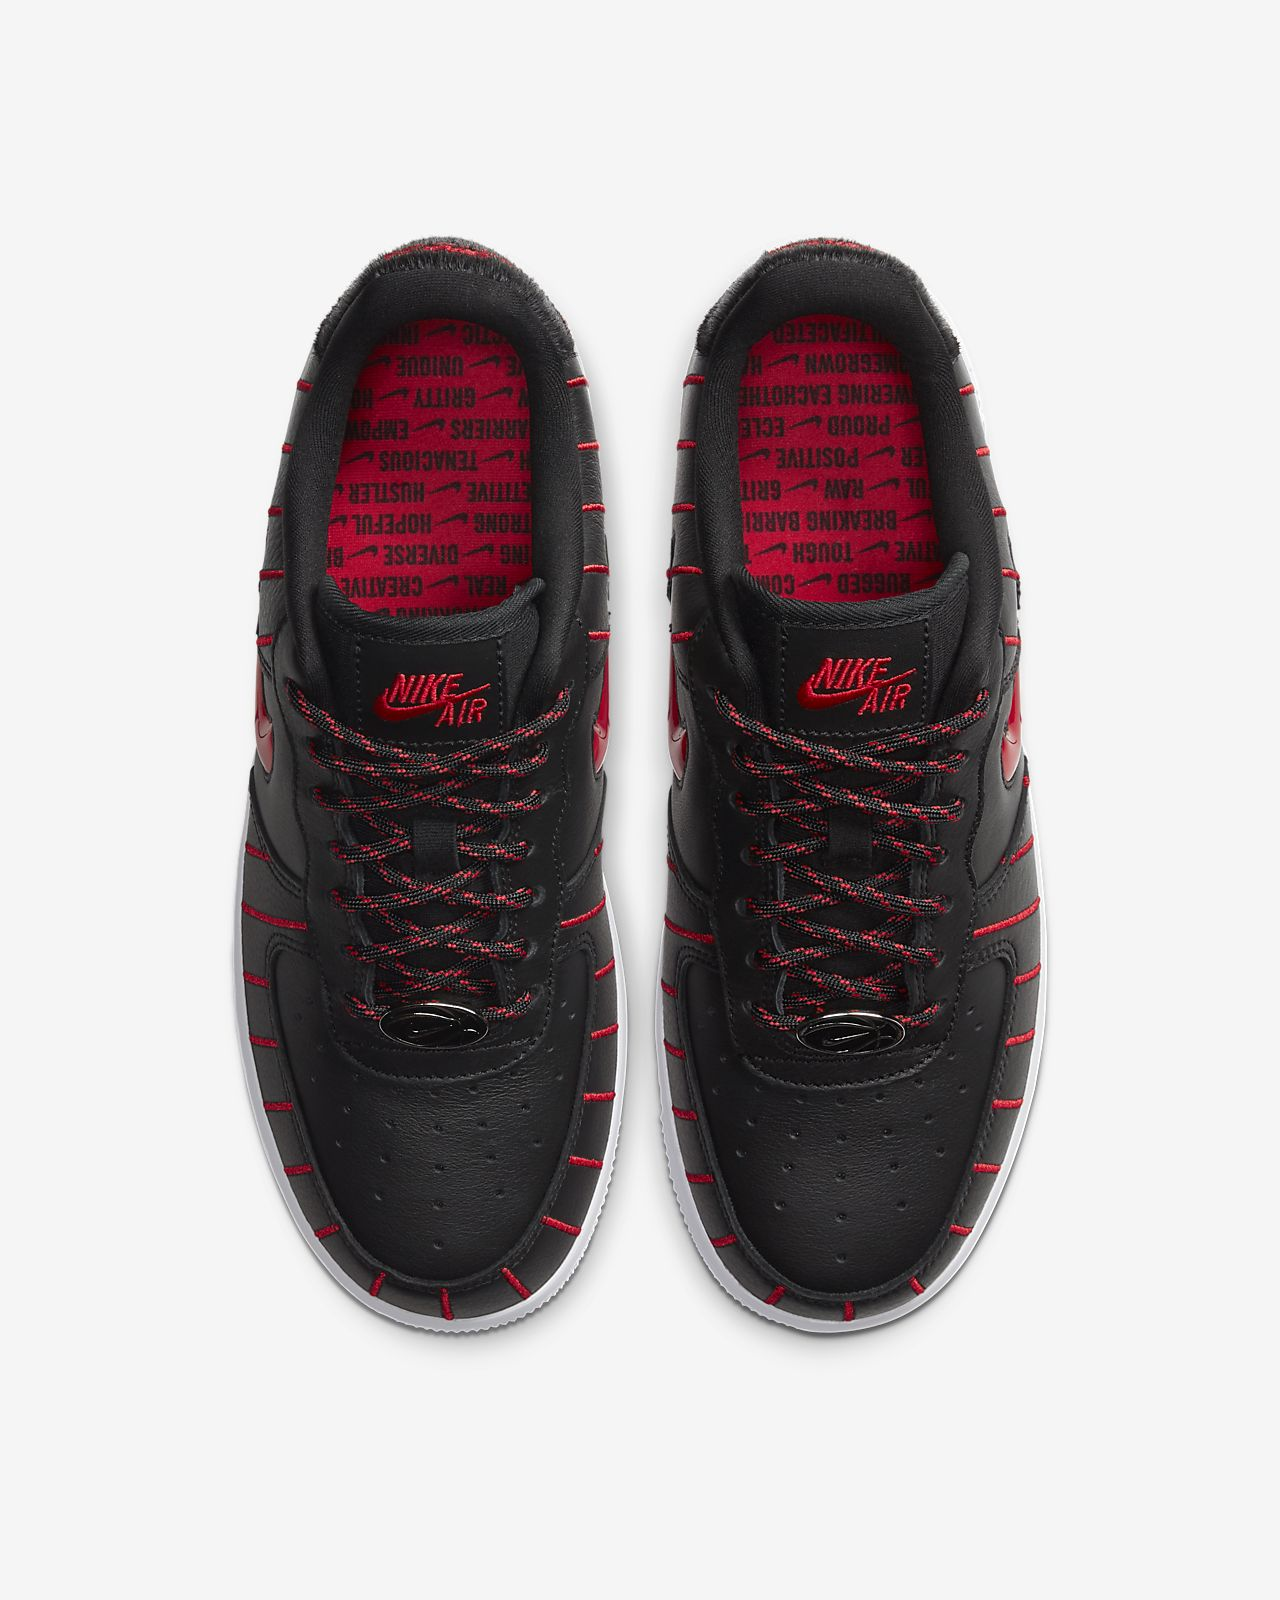 Air Force 1 NBA Low (Chicago Bulls) Men's Shoe | Dress with